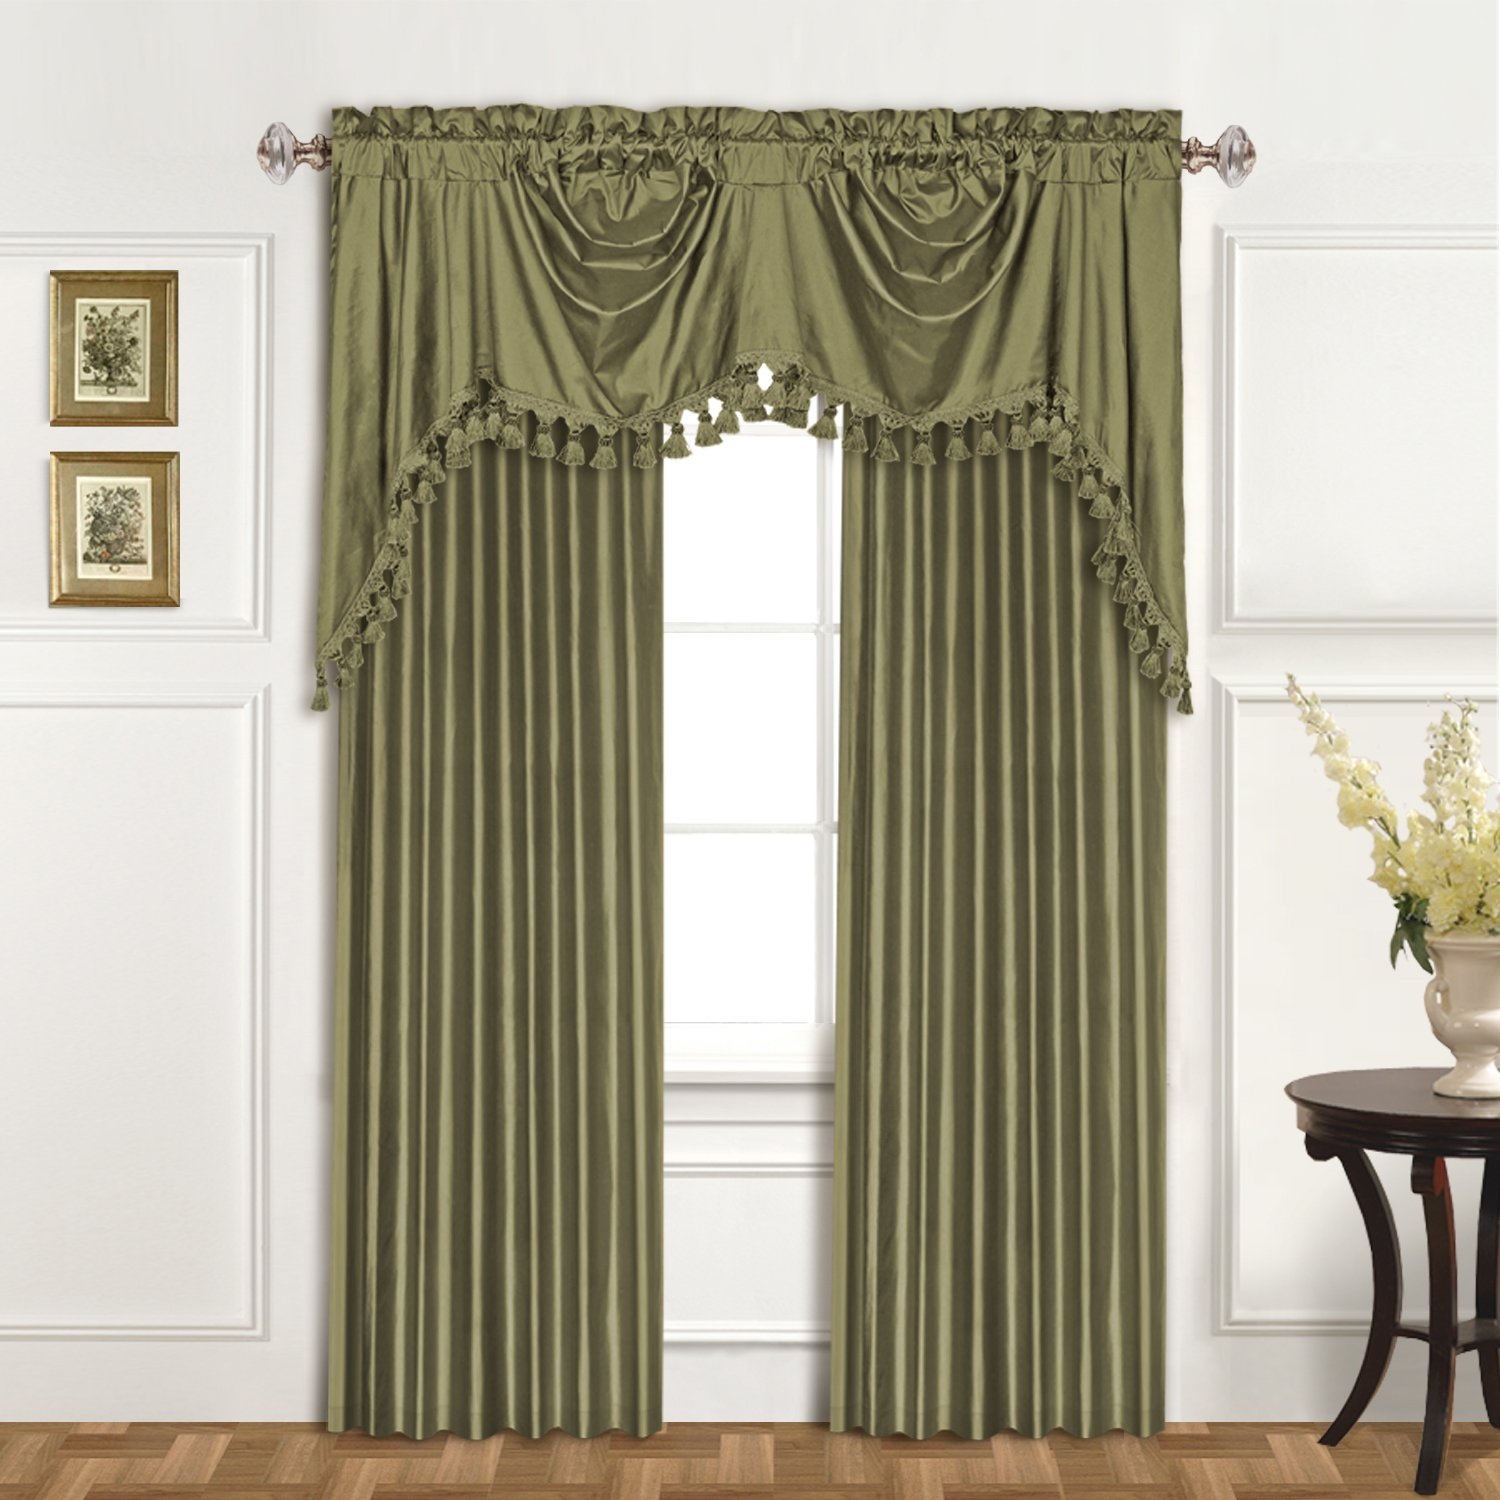 curtain silk how to at recyclenebraska curtains wash faux org home